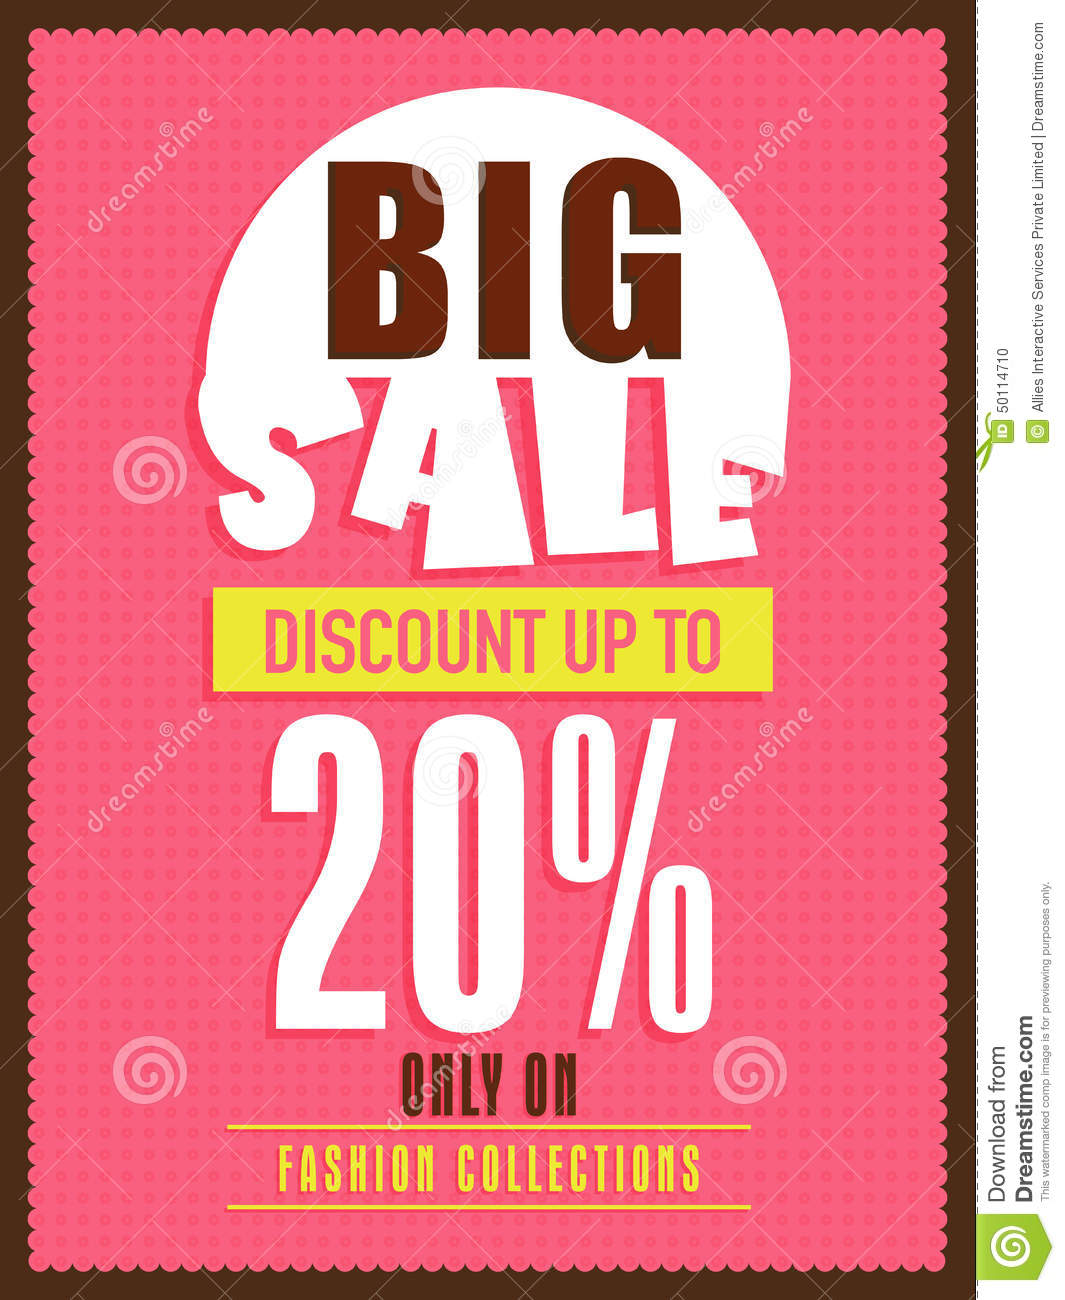 Big sale flyer banner or poster stock photo image for Cheap prints and posters